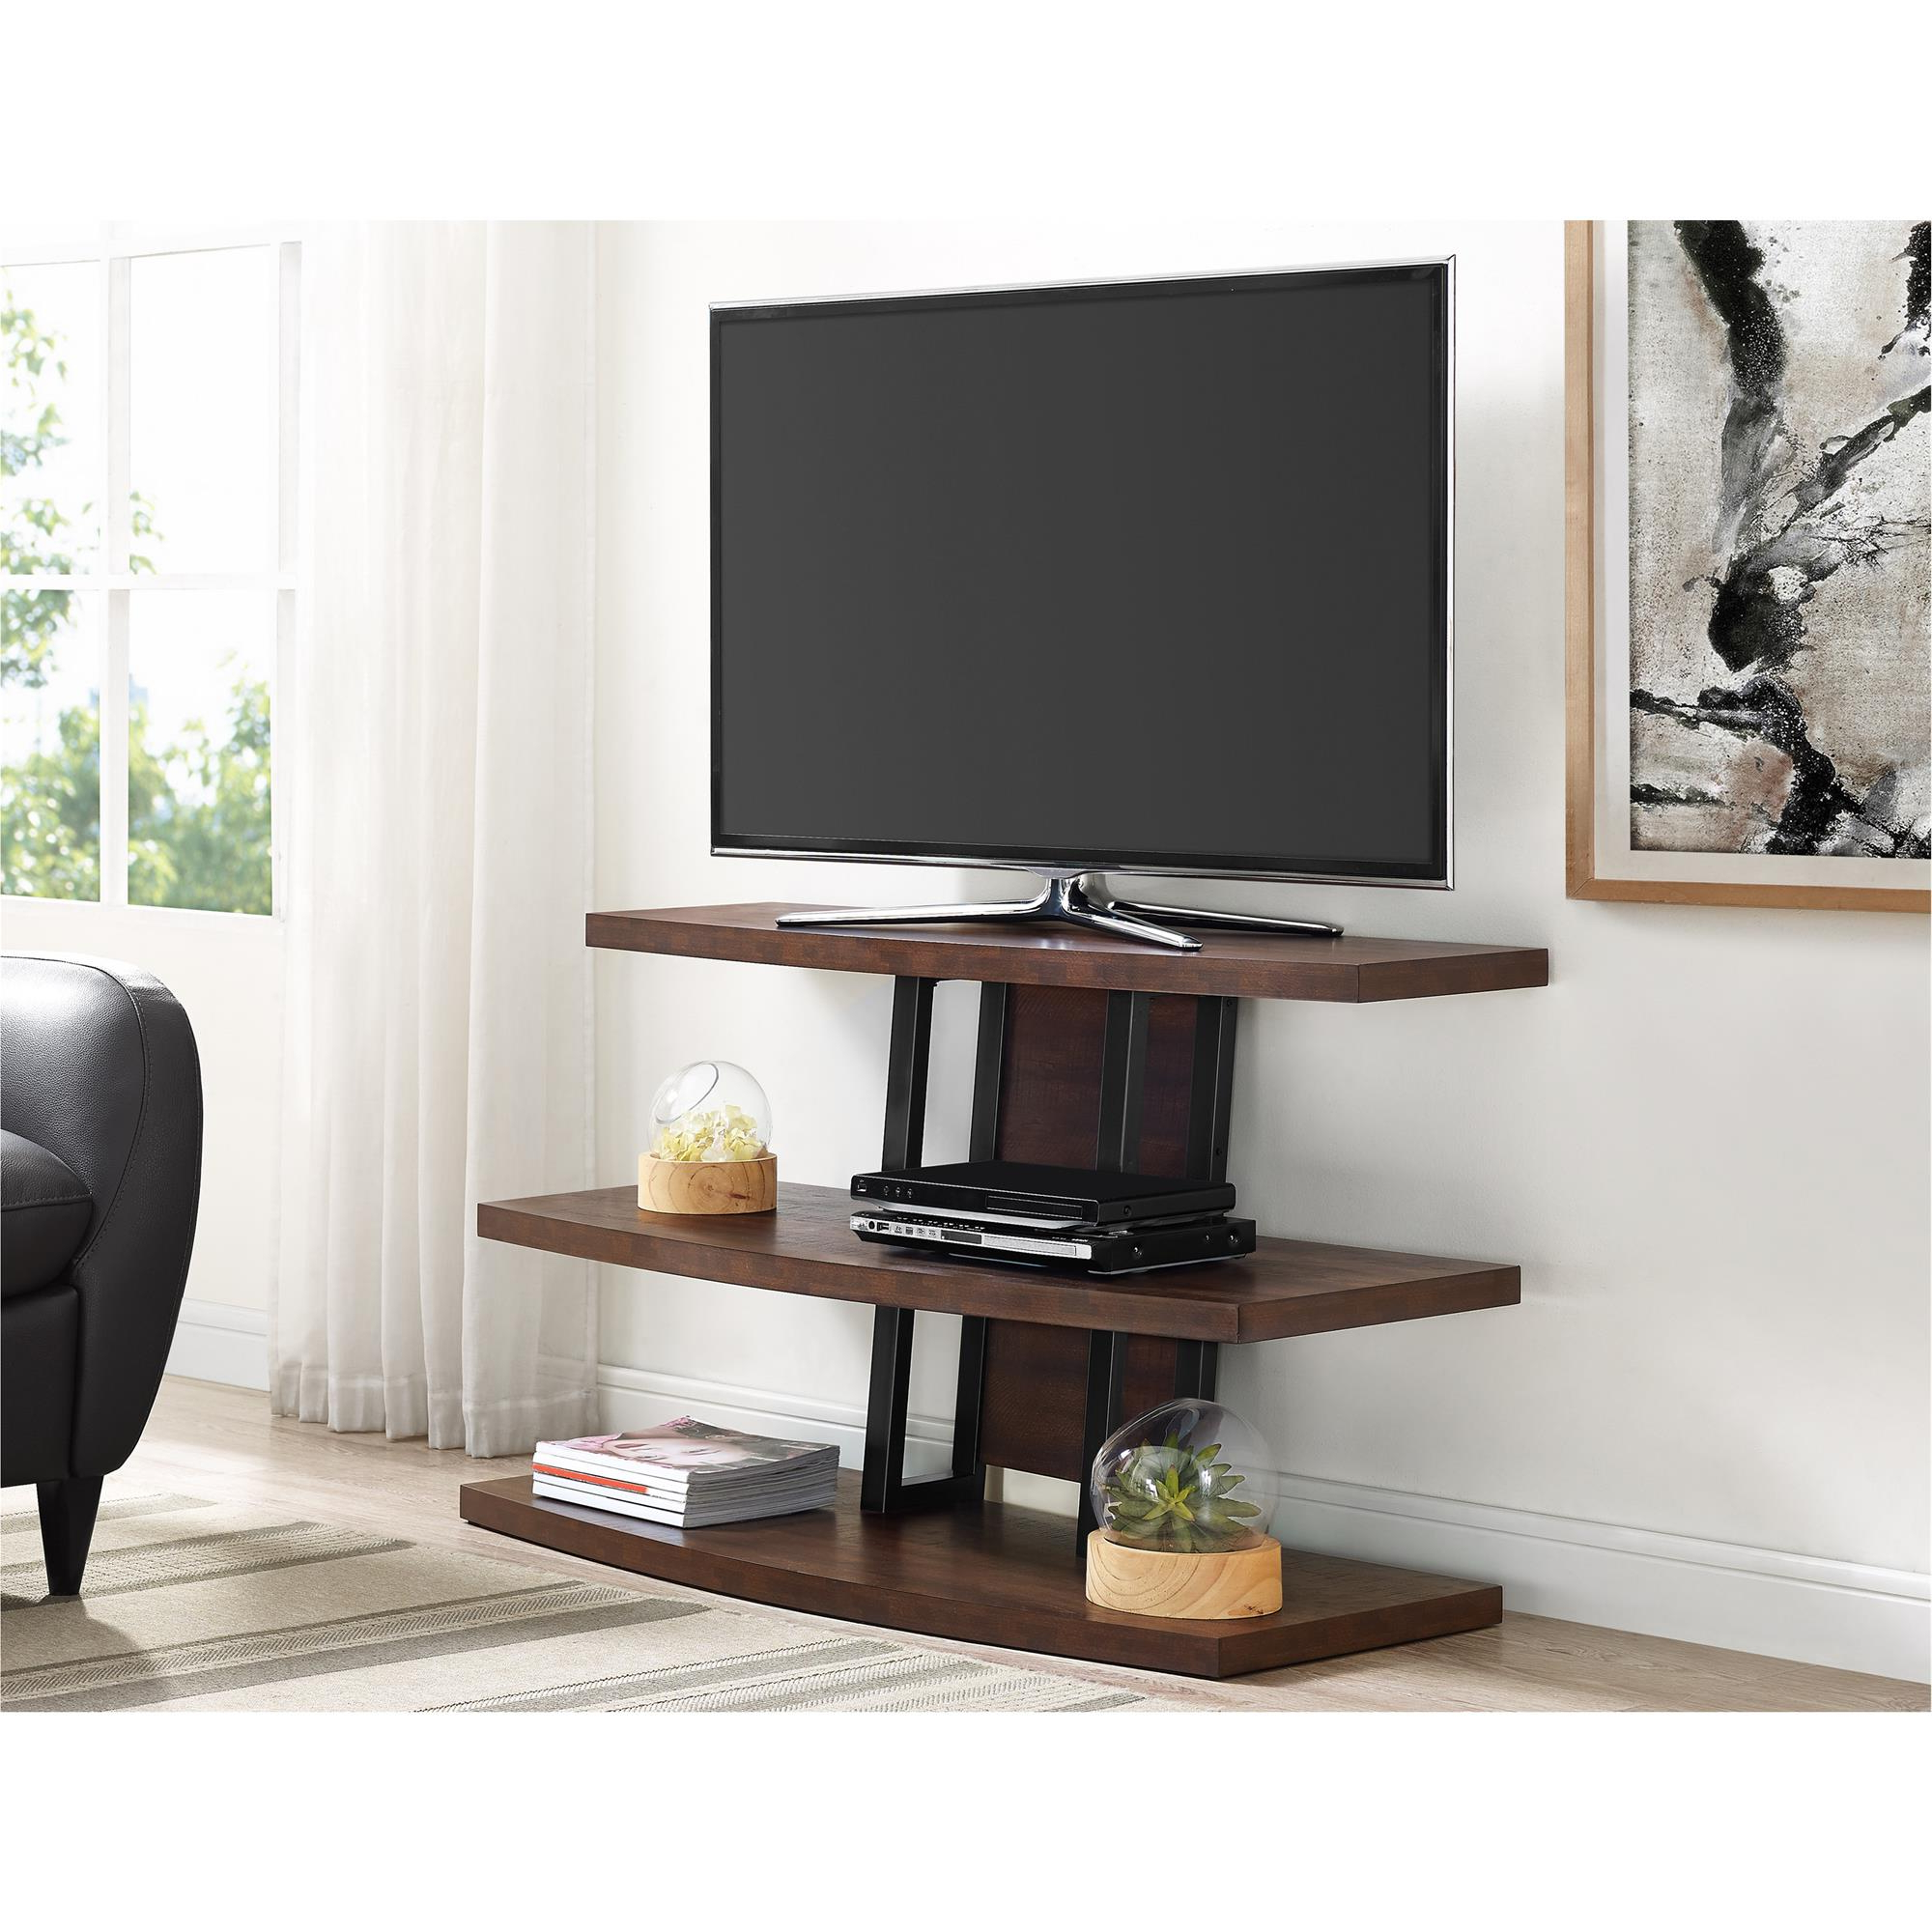 "Forma 65 Inch Tv Stands Regarding 2017 Ameriwood Home Castling Tv Stand For Tvs Up To 55"", Espresso (View 8 of 20)"